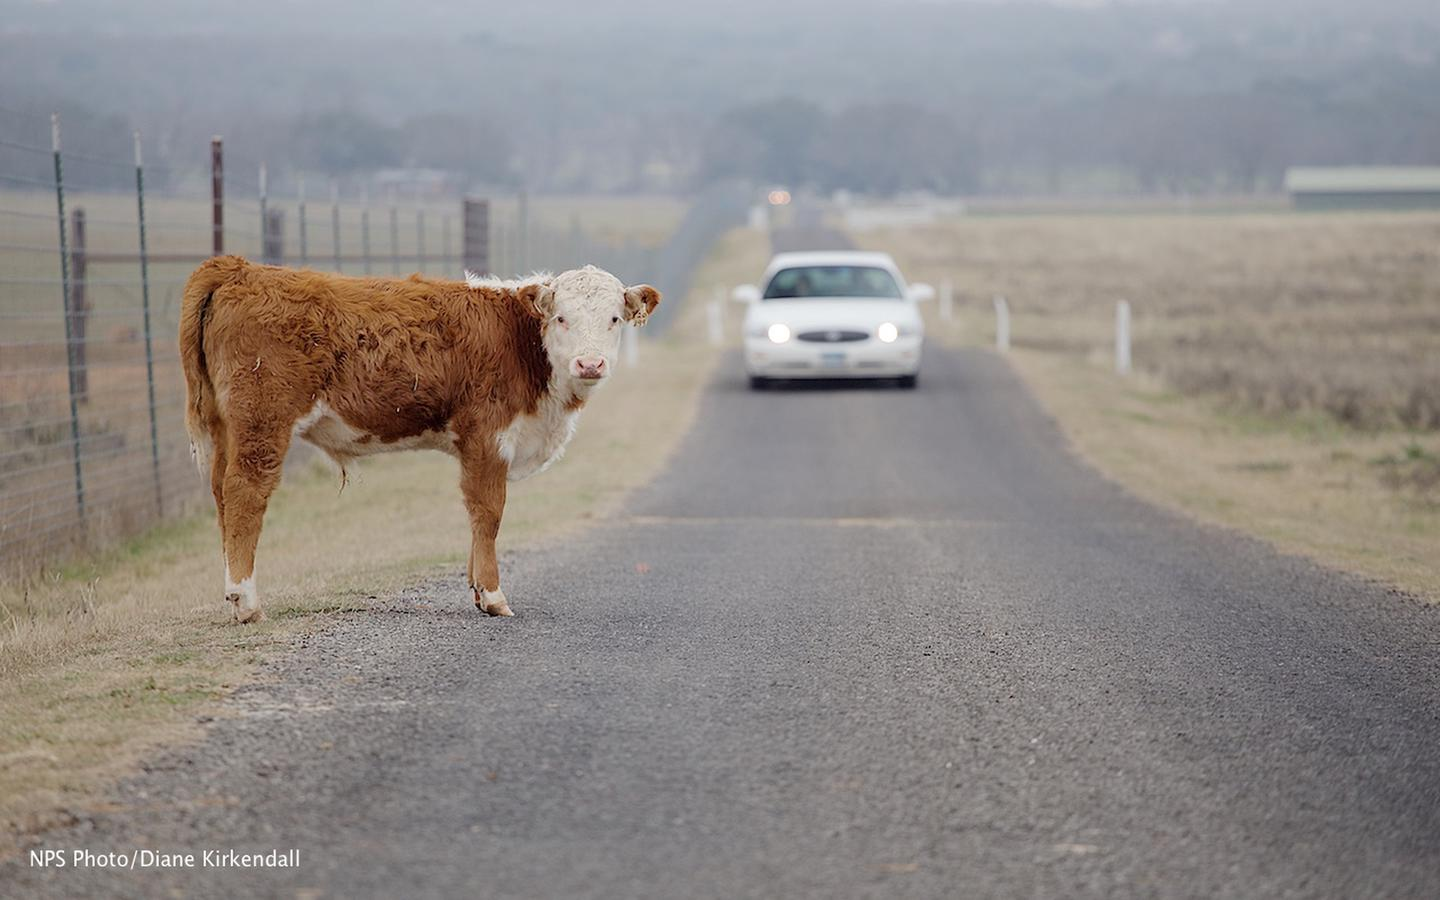 Touring the LBJ RanchA park visitor meets one of the ranch's Hereford cattle while driving the tour route.